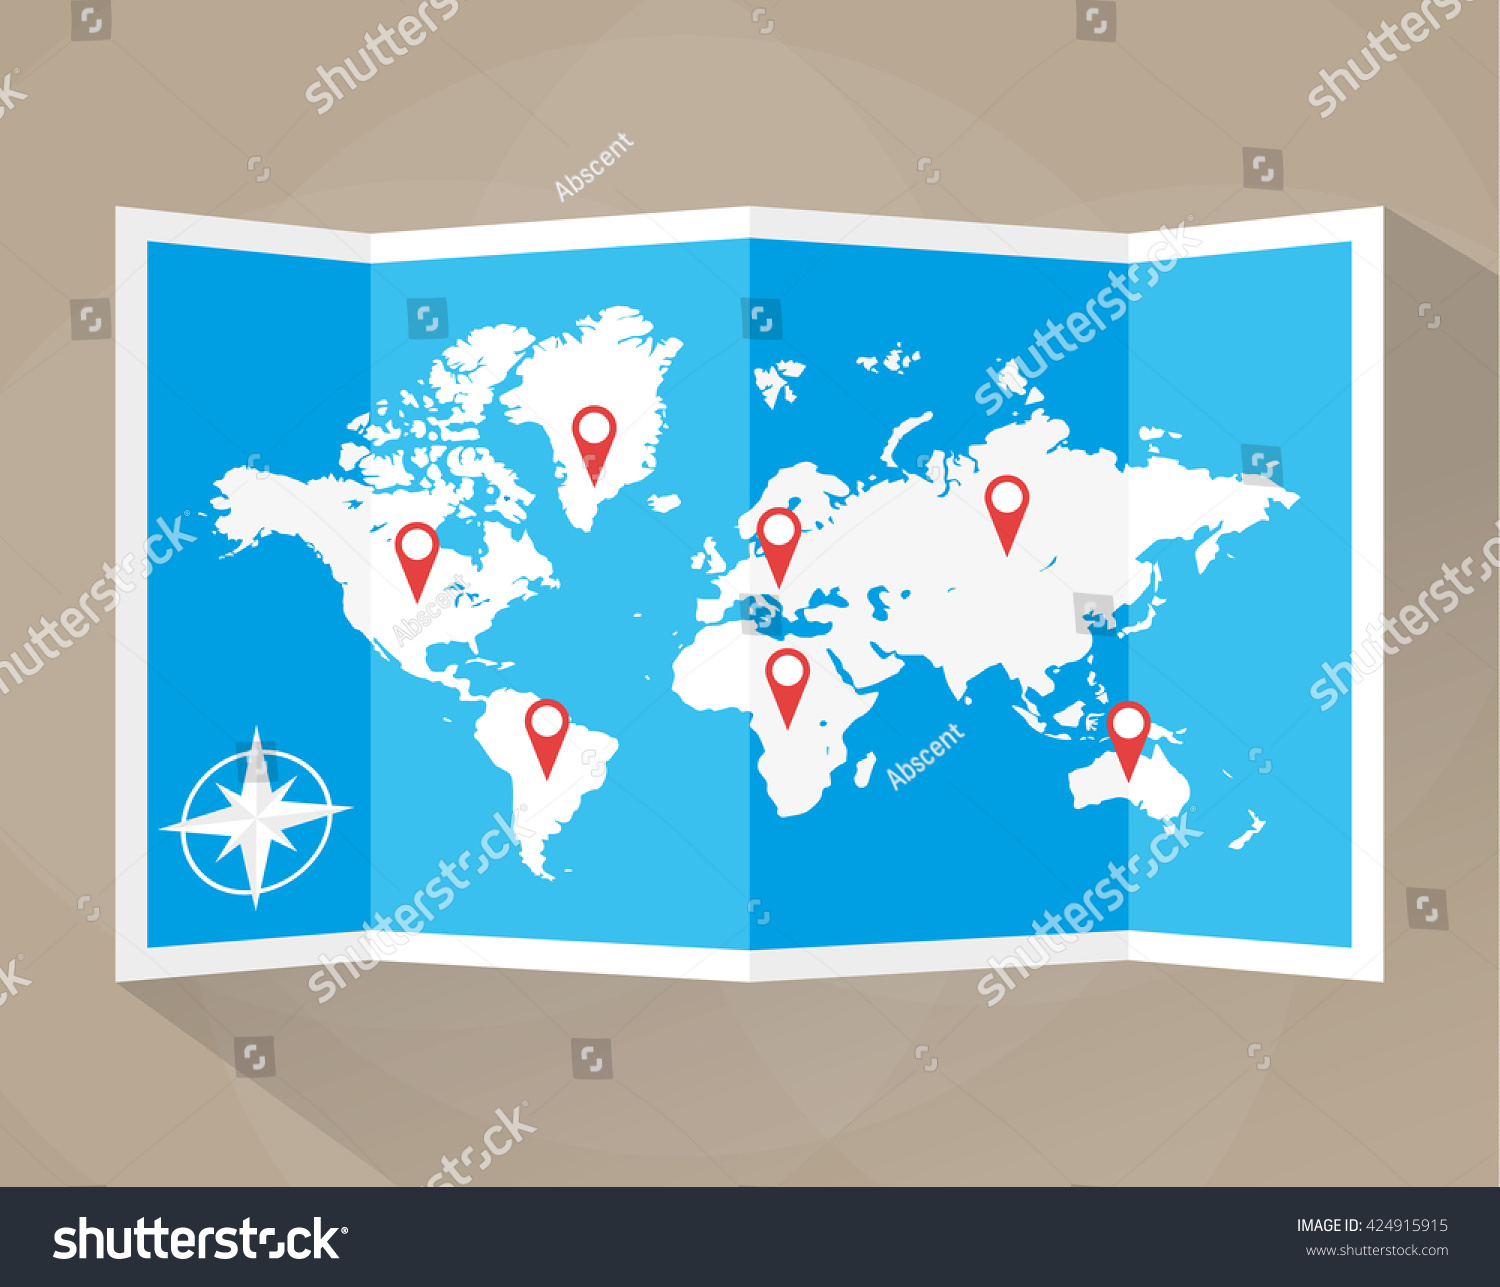 Paper world map location icons map stock illustration 424915915 paper world map with location icons map icon map illustration in flat design gumiabroncs Image collections